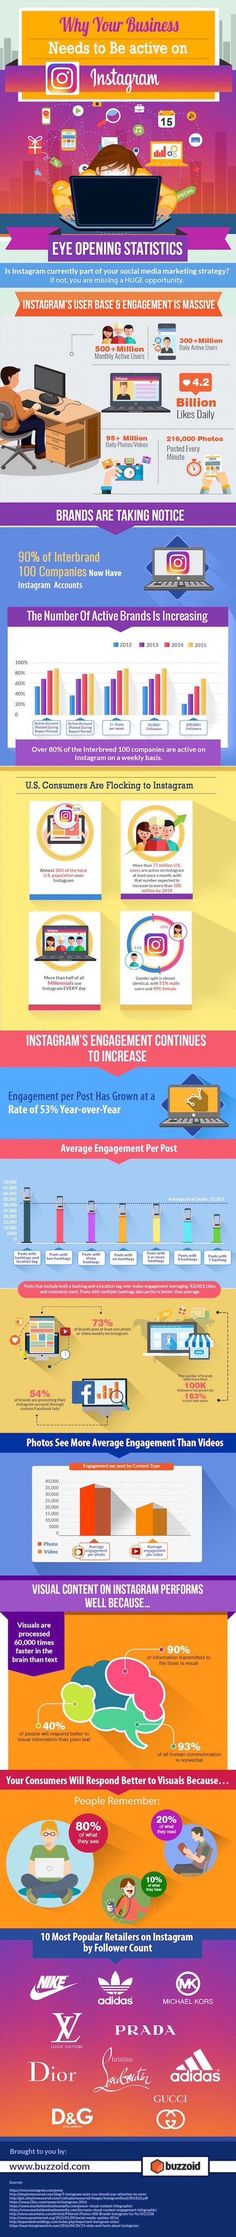 The Benefits Of Marketing Your Business On Instagram